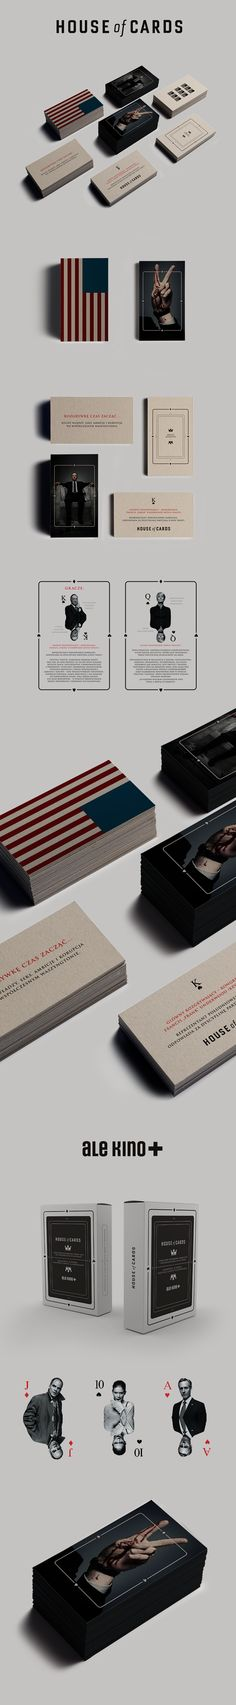 House of Cards / Ale Kino+ on Behance